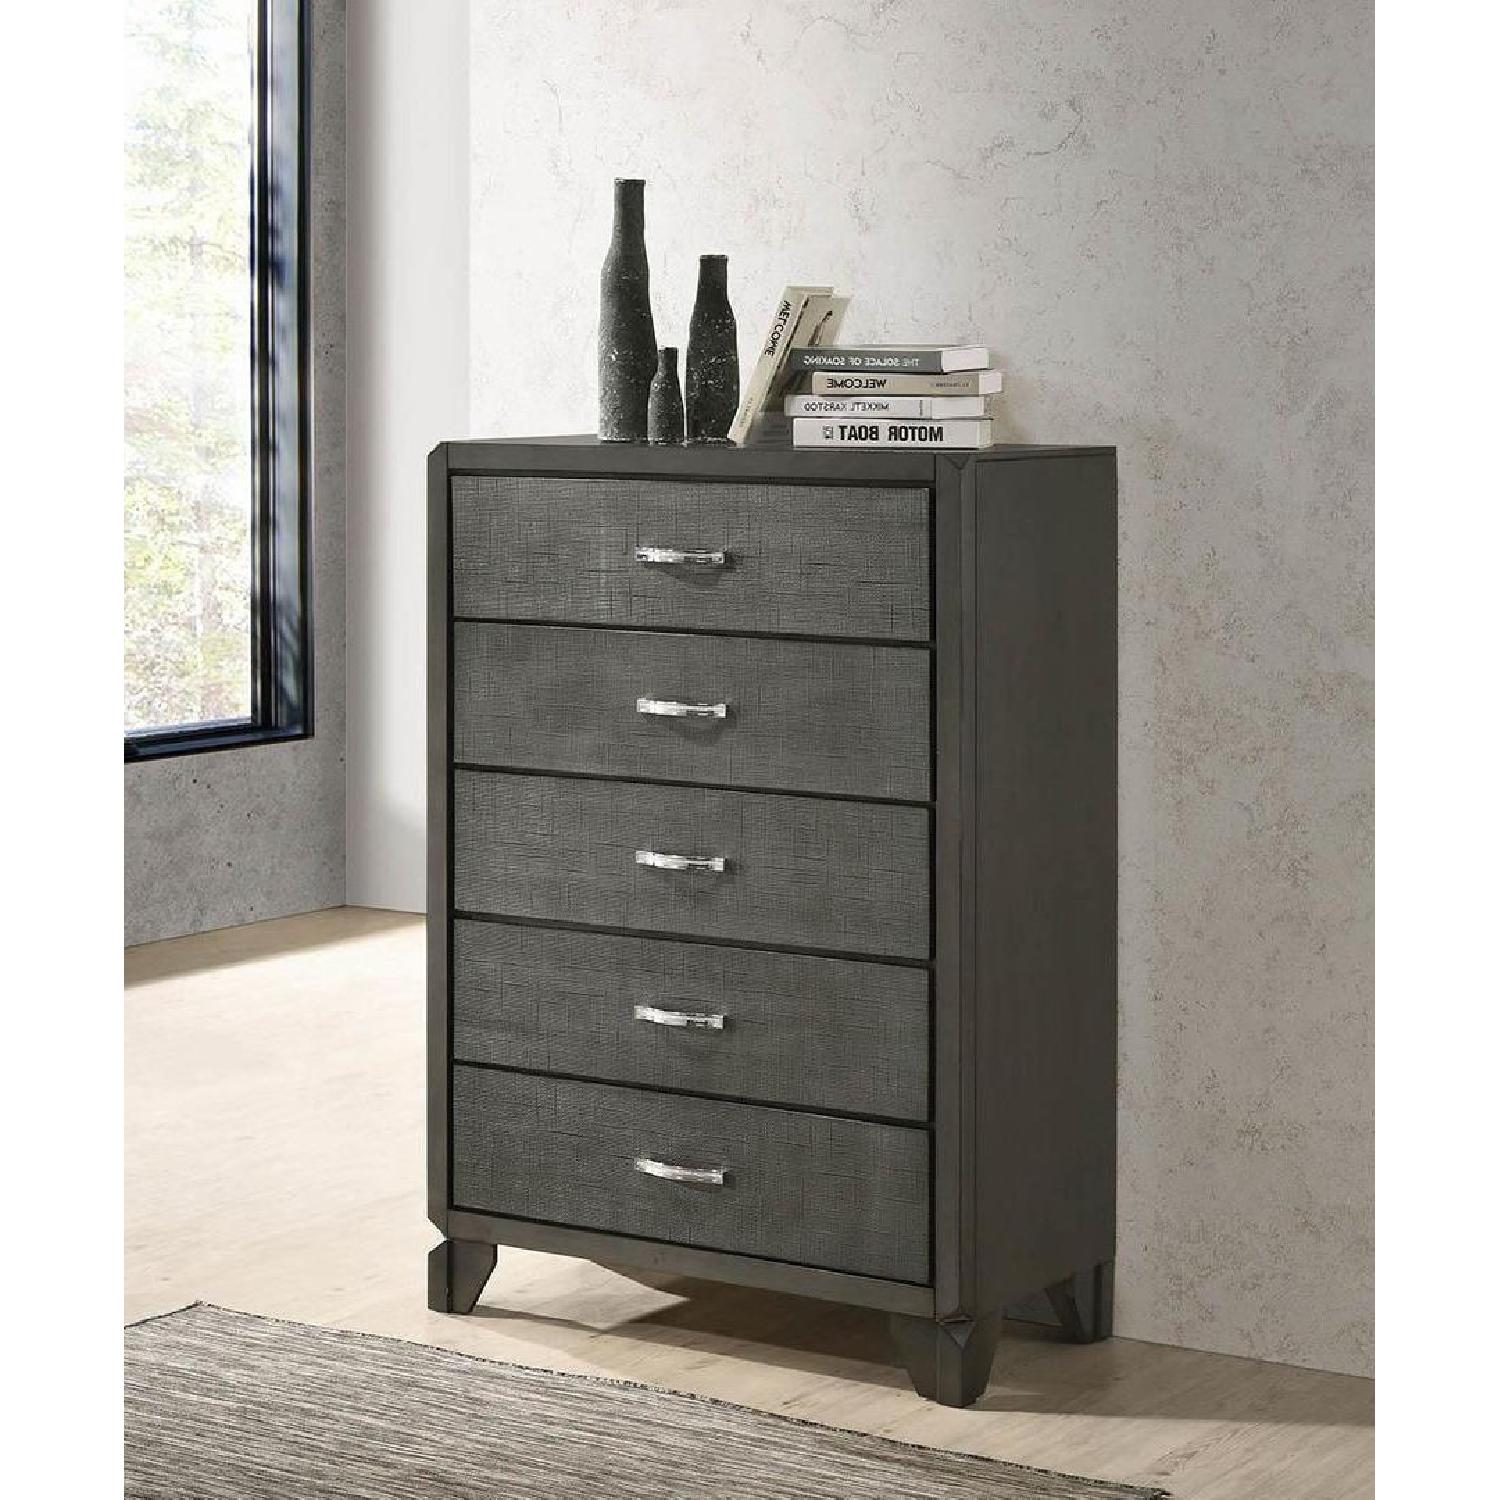 5-Drawer Chest in Caviar Finish w/ Woven Texture Front - image-4